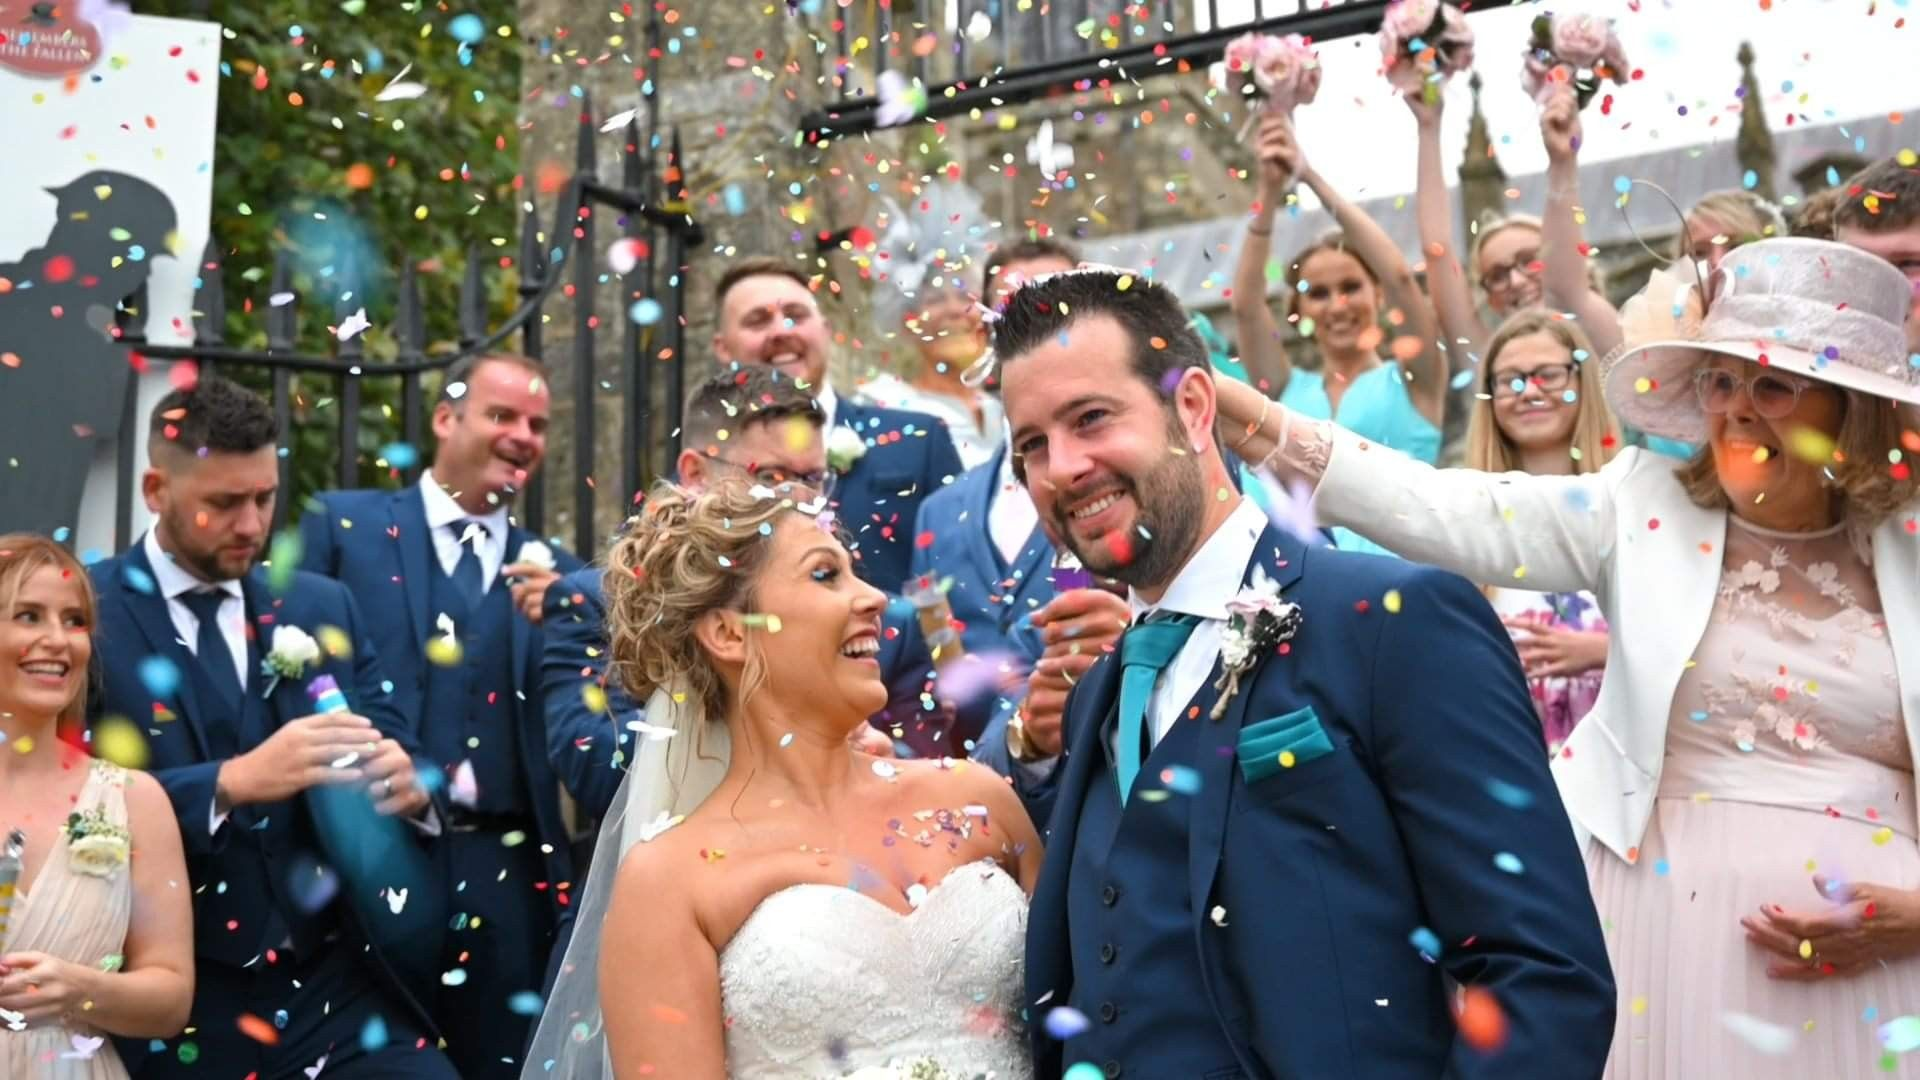 A couple stood on the steps of the church on their wedding day surrounded by confetti